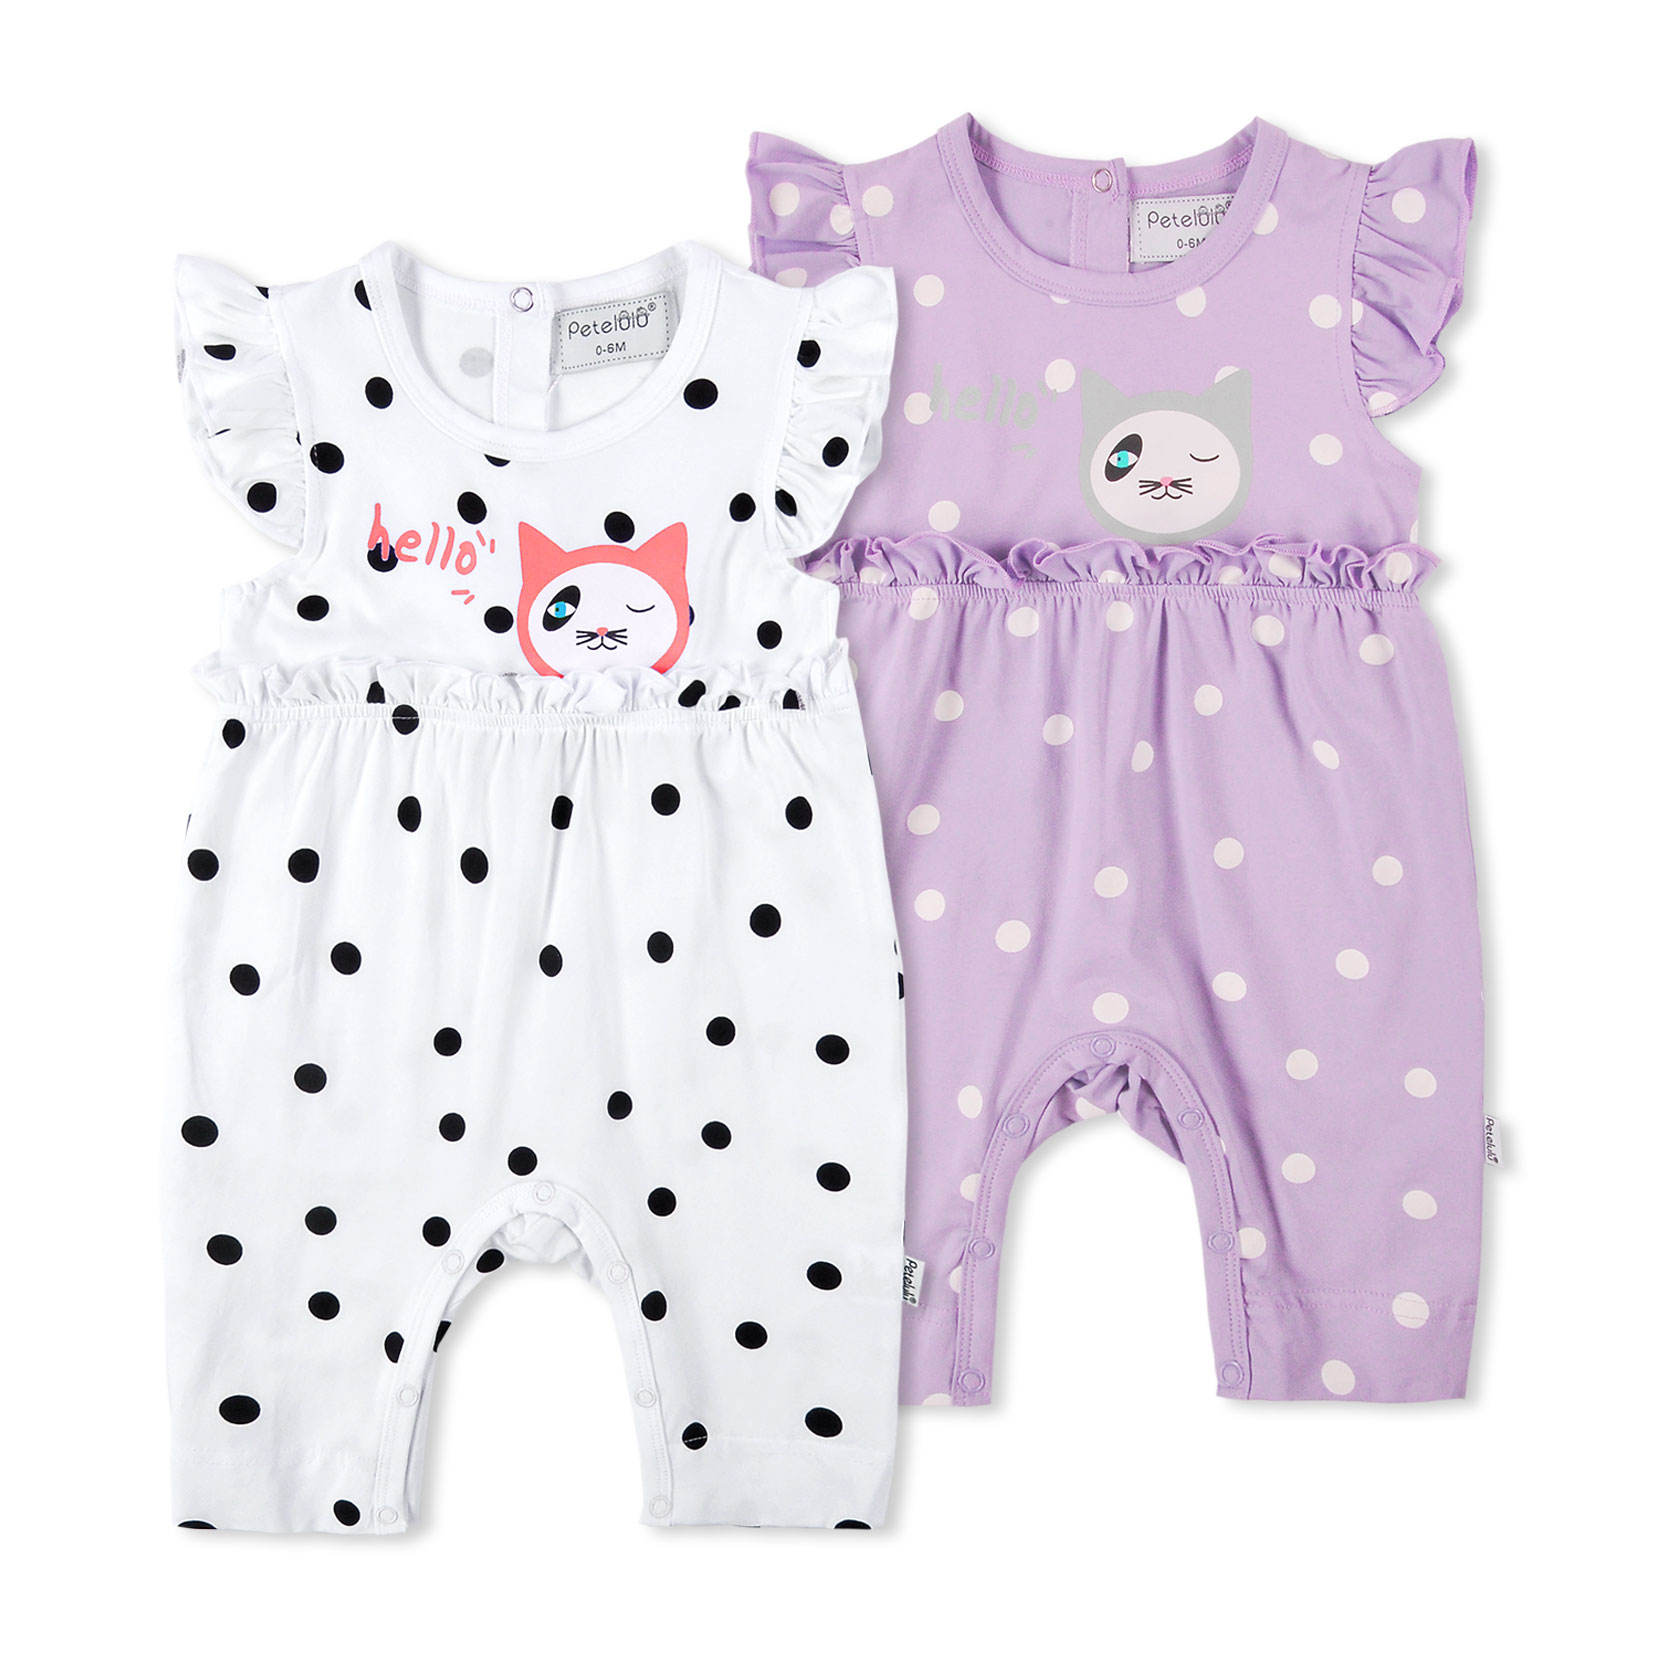 Petelulu Wholesale manufacturing company baby girs romper infants short sleeve one piece outfit summer toddlers outwear